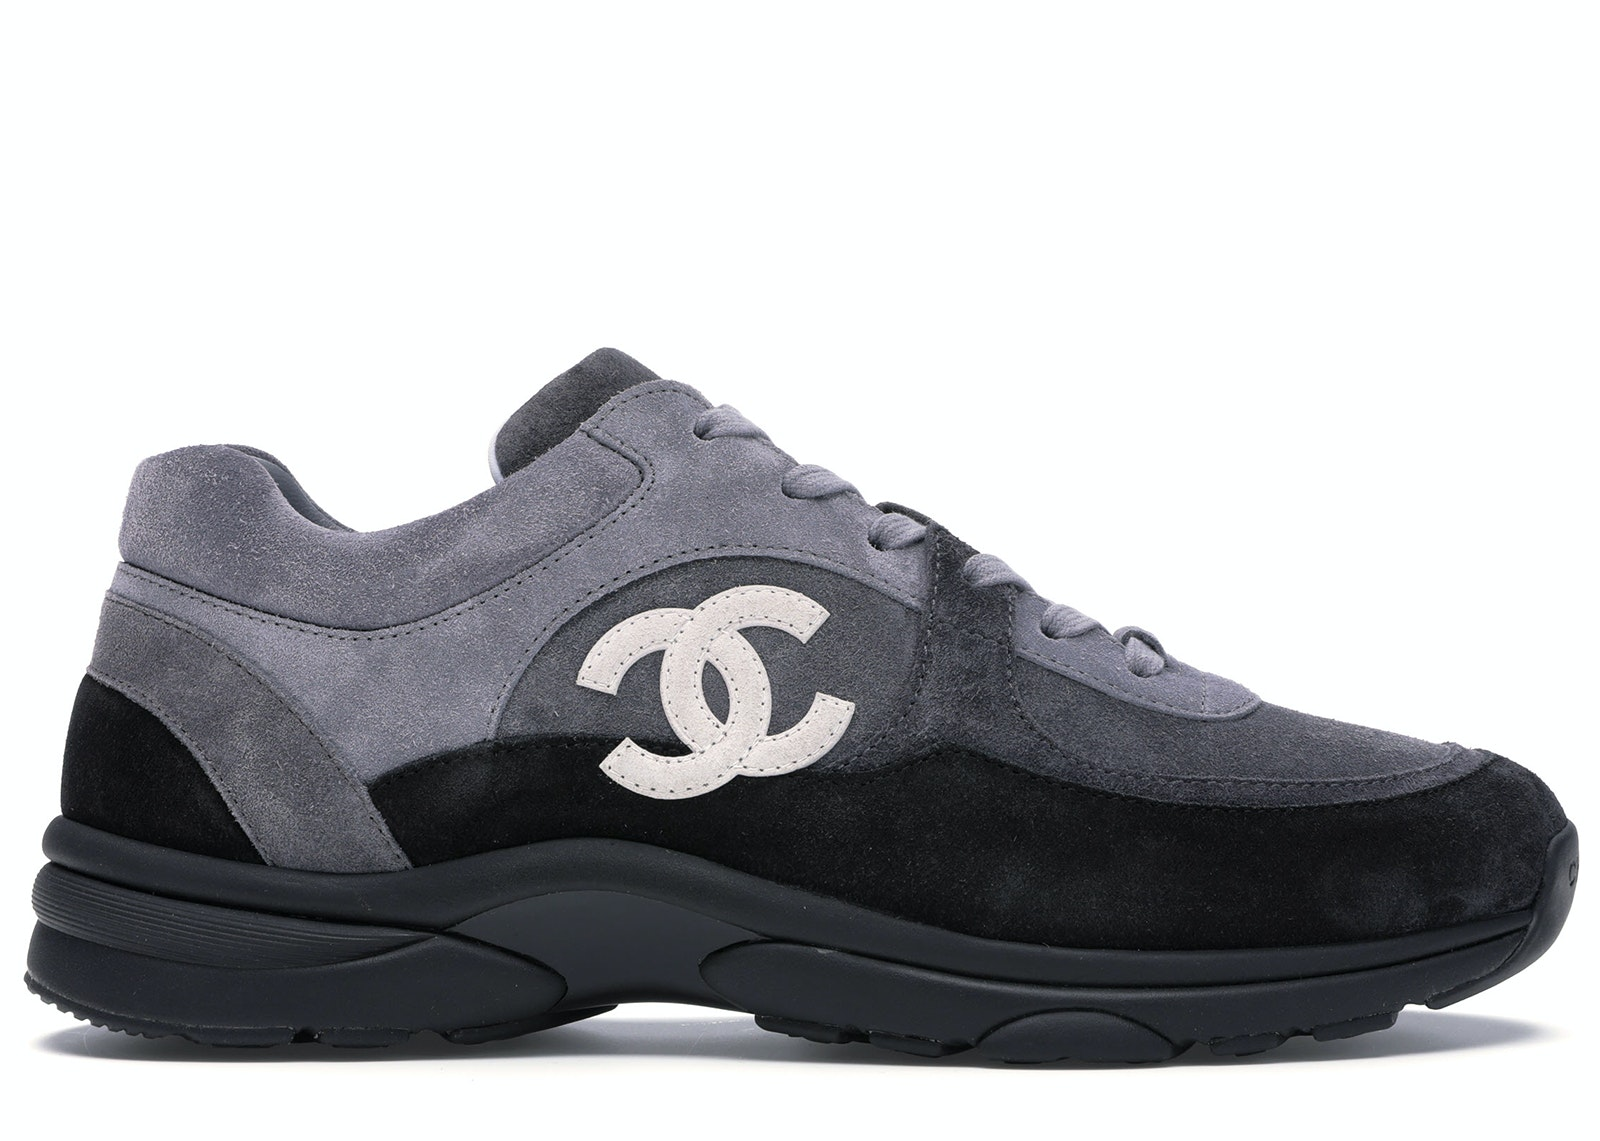 Buy Chanel Shoes Deadstock Sneakers